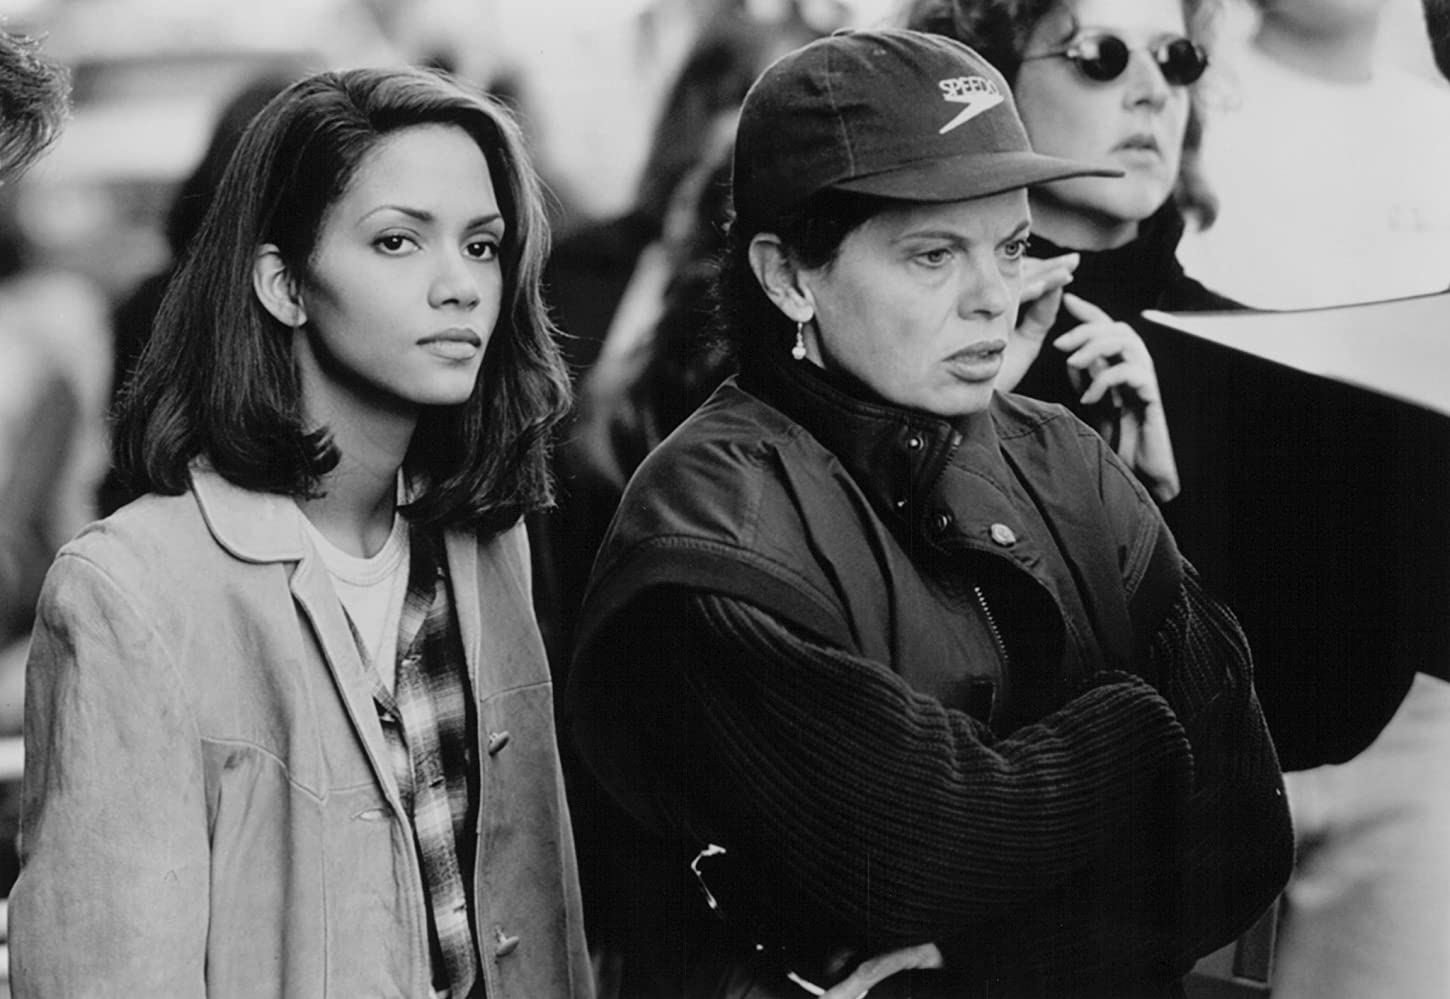 A black and white image of Halle Berry and Amy Holden Jones on the set of The Rich Man's Wife in 1996. Holden Jones, right, a white woman around 40, wears a thick dark sweater and a gilet over it, and a dark Speedo baseball cap. She has her arms folded and is intently watching something out of the frame. The actress, Berry, a Black woman around 30, stands beside Holden Jones, wearing a pale trench coat over a buttoned up plaid shirt. She is also gazing off-camera.